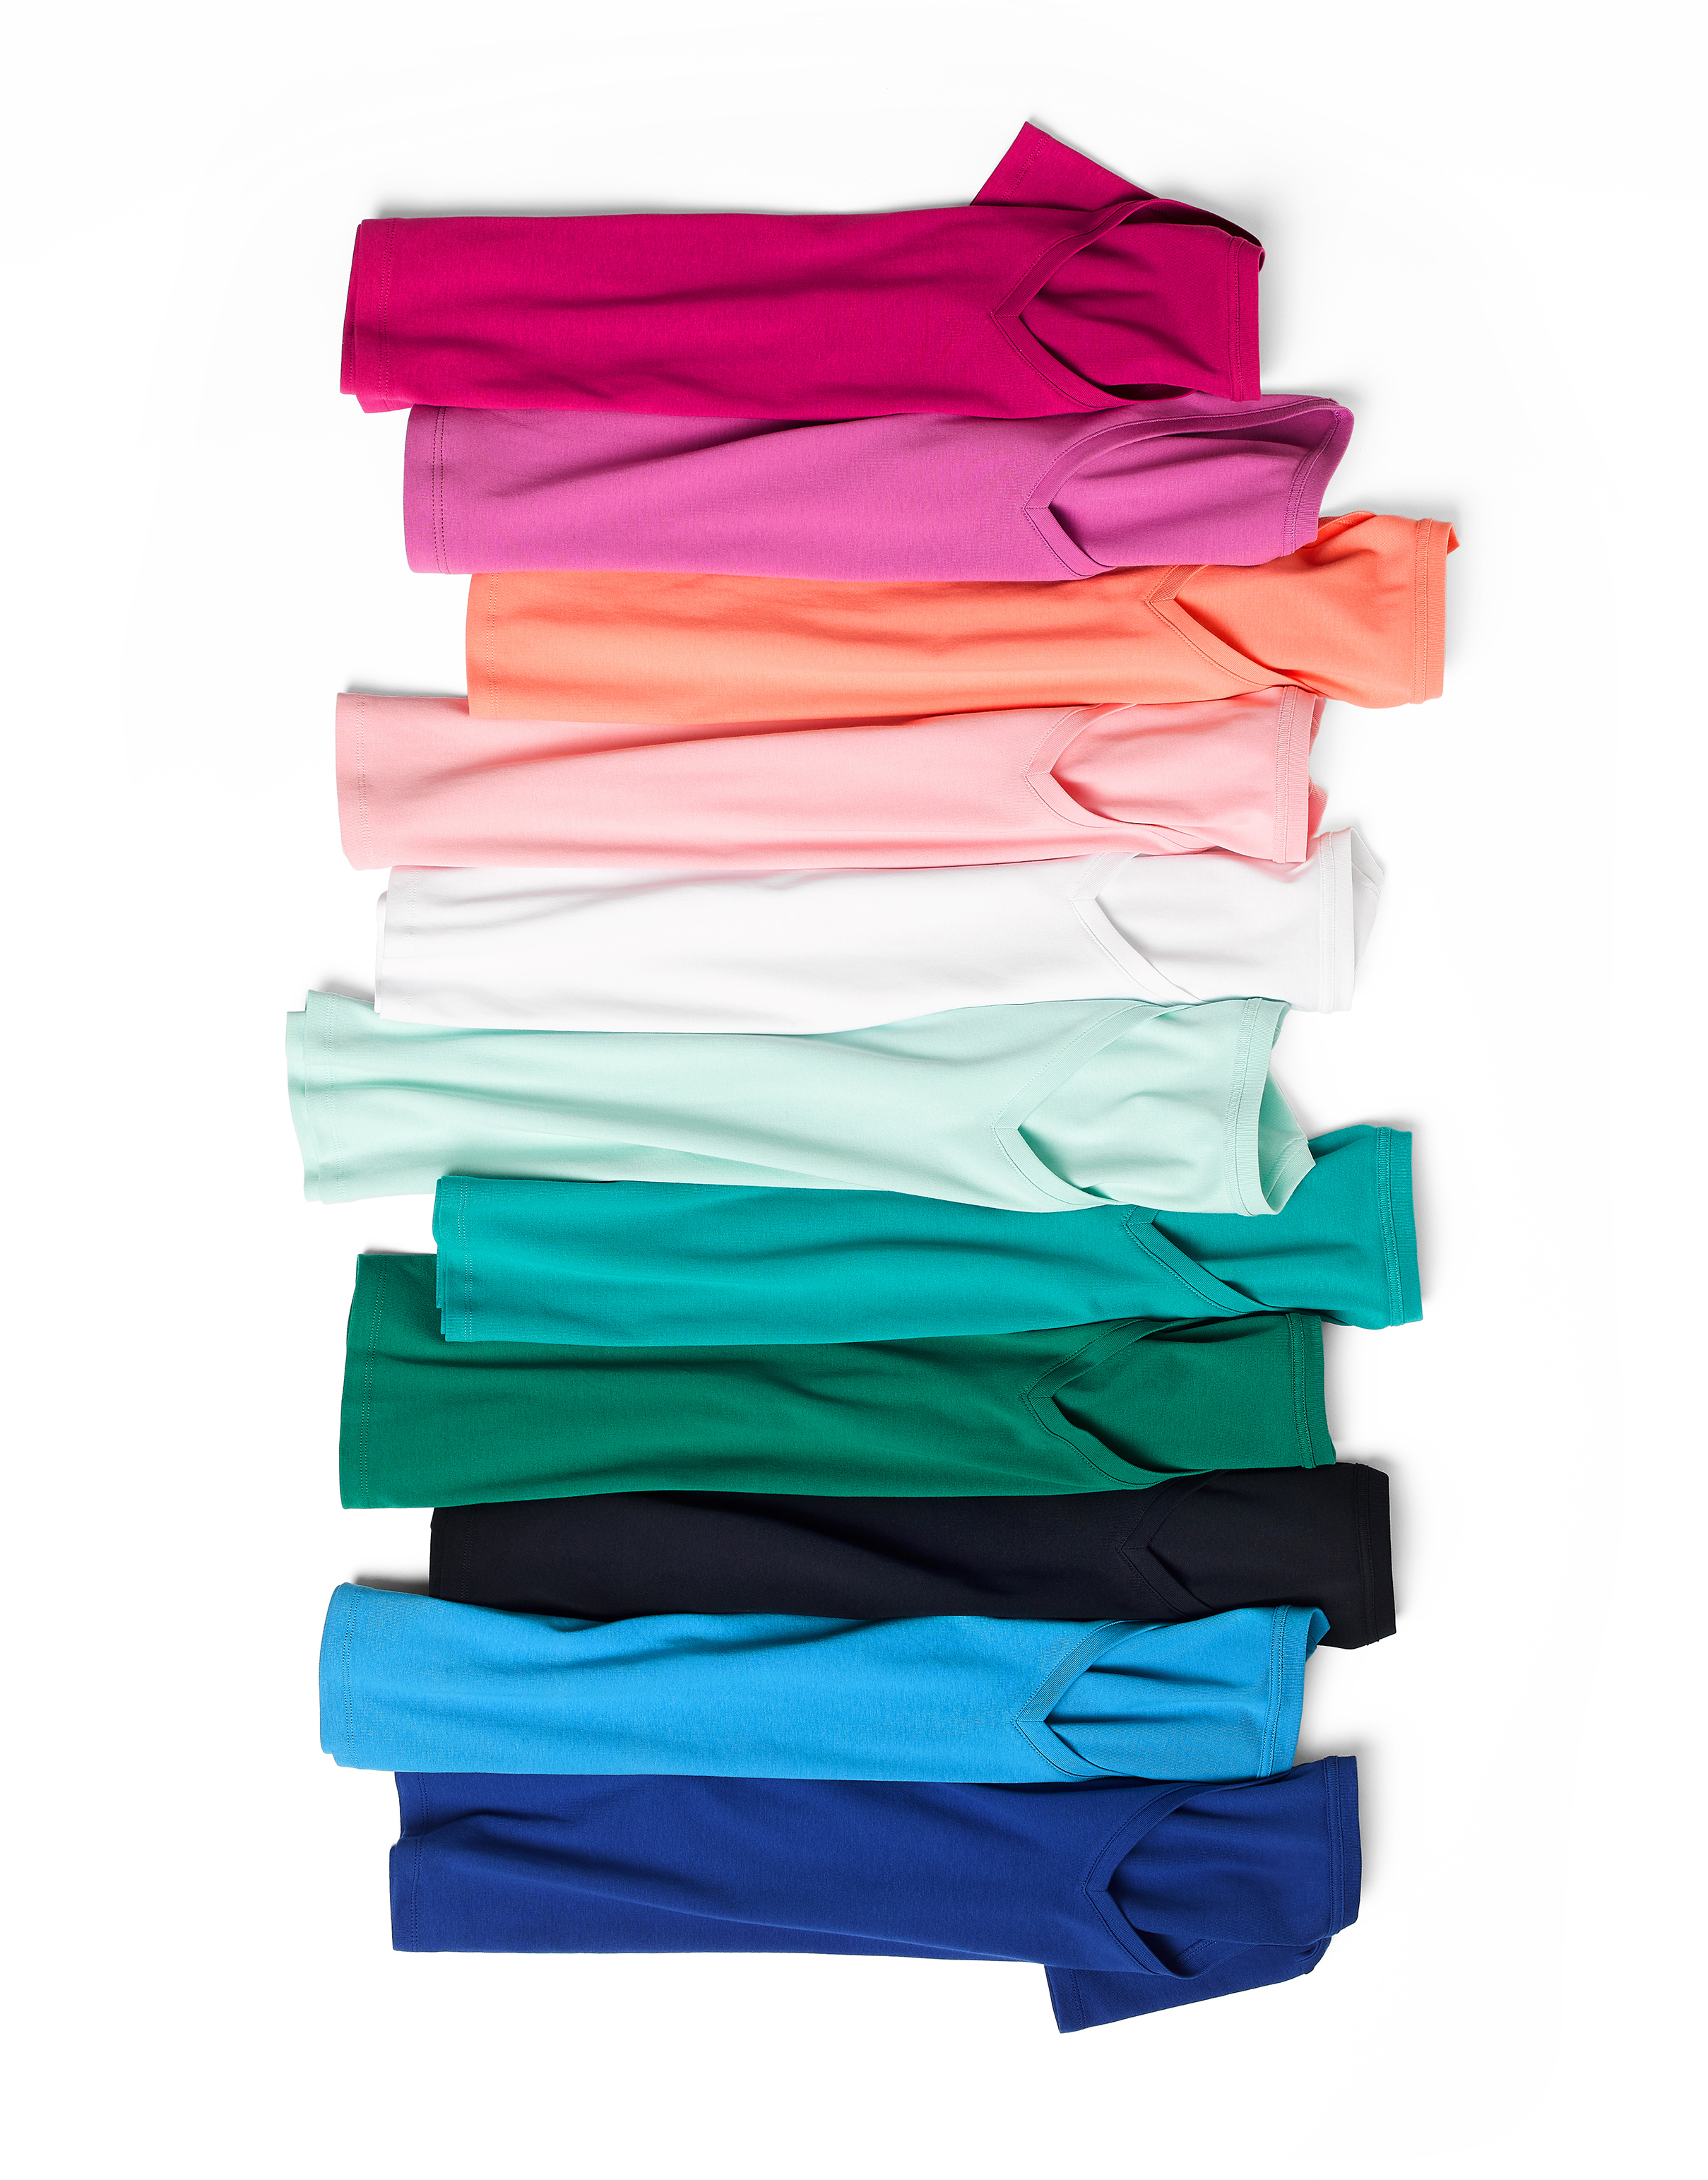 Case Study  Joe Fresh  Folded Colorful Shirts Desktop